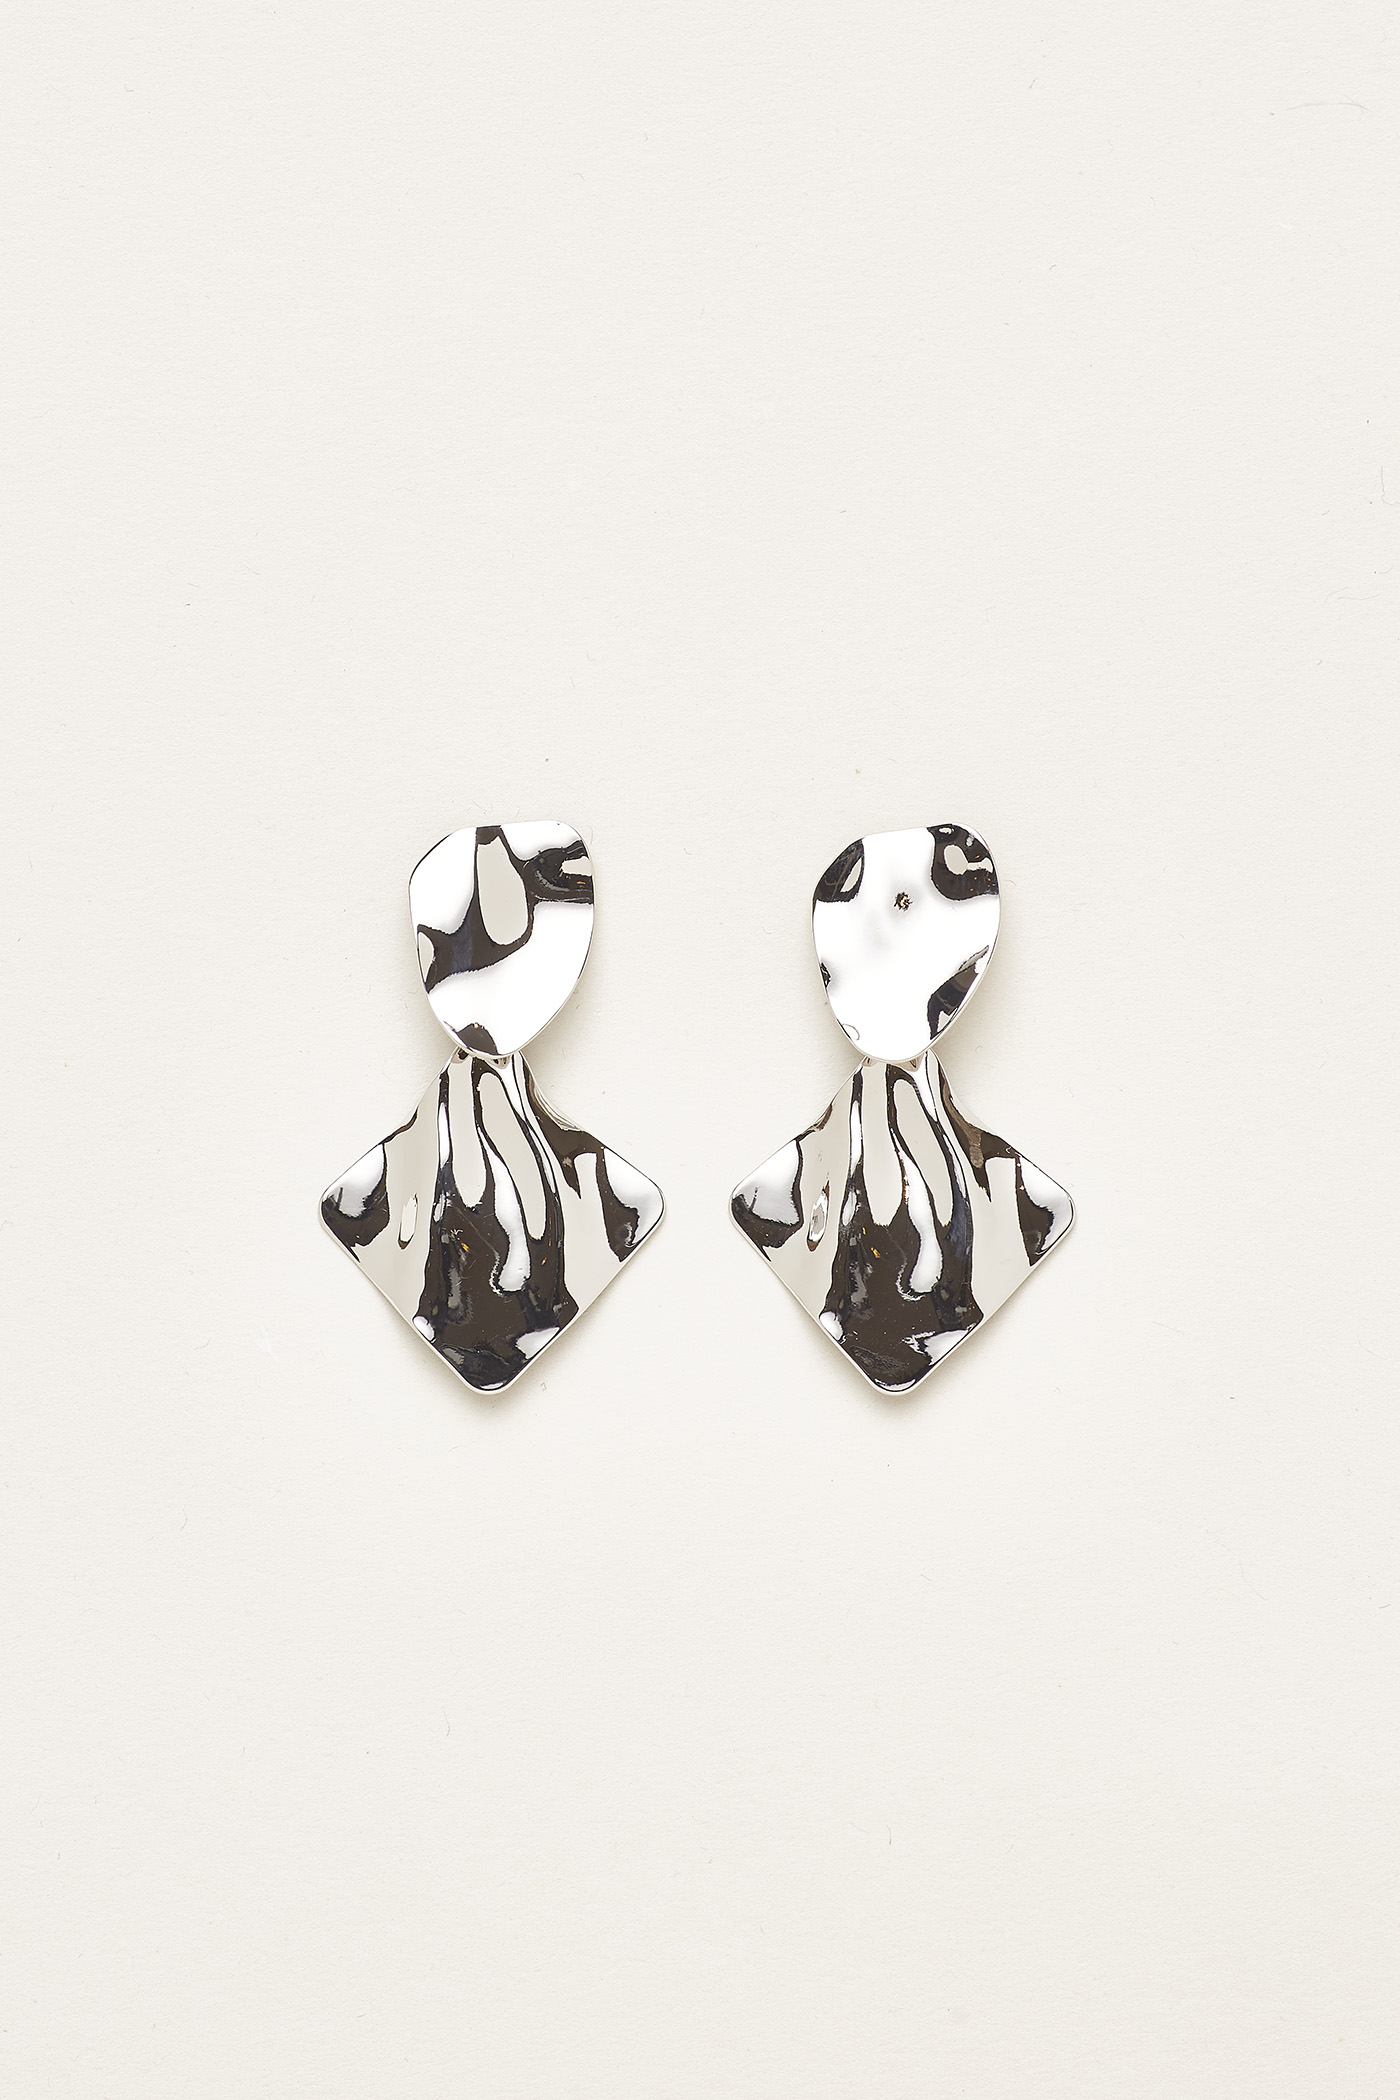 Kyson Molten Drop Earrings